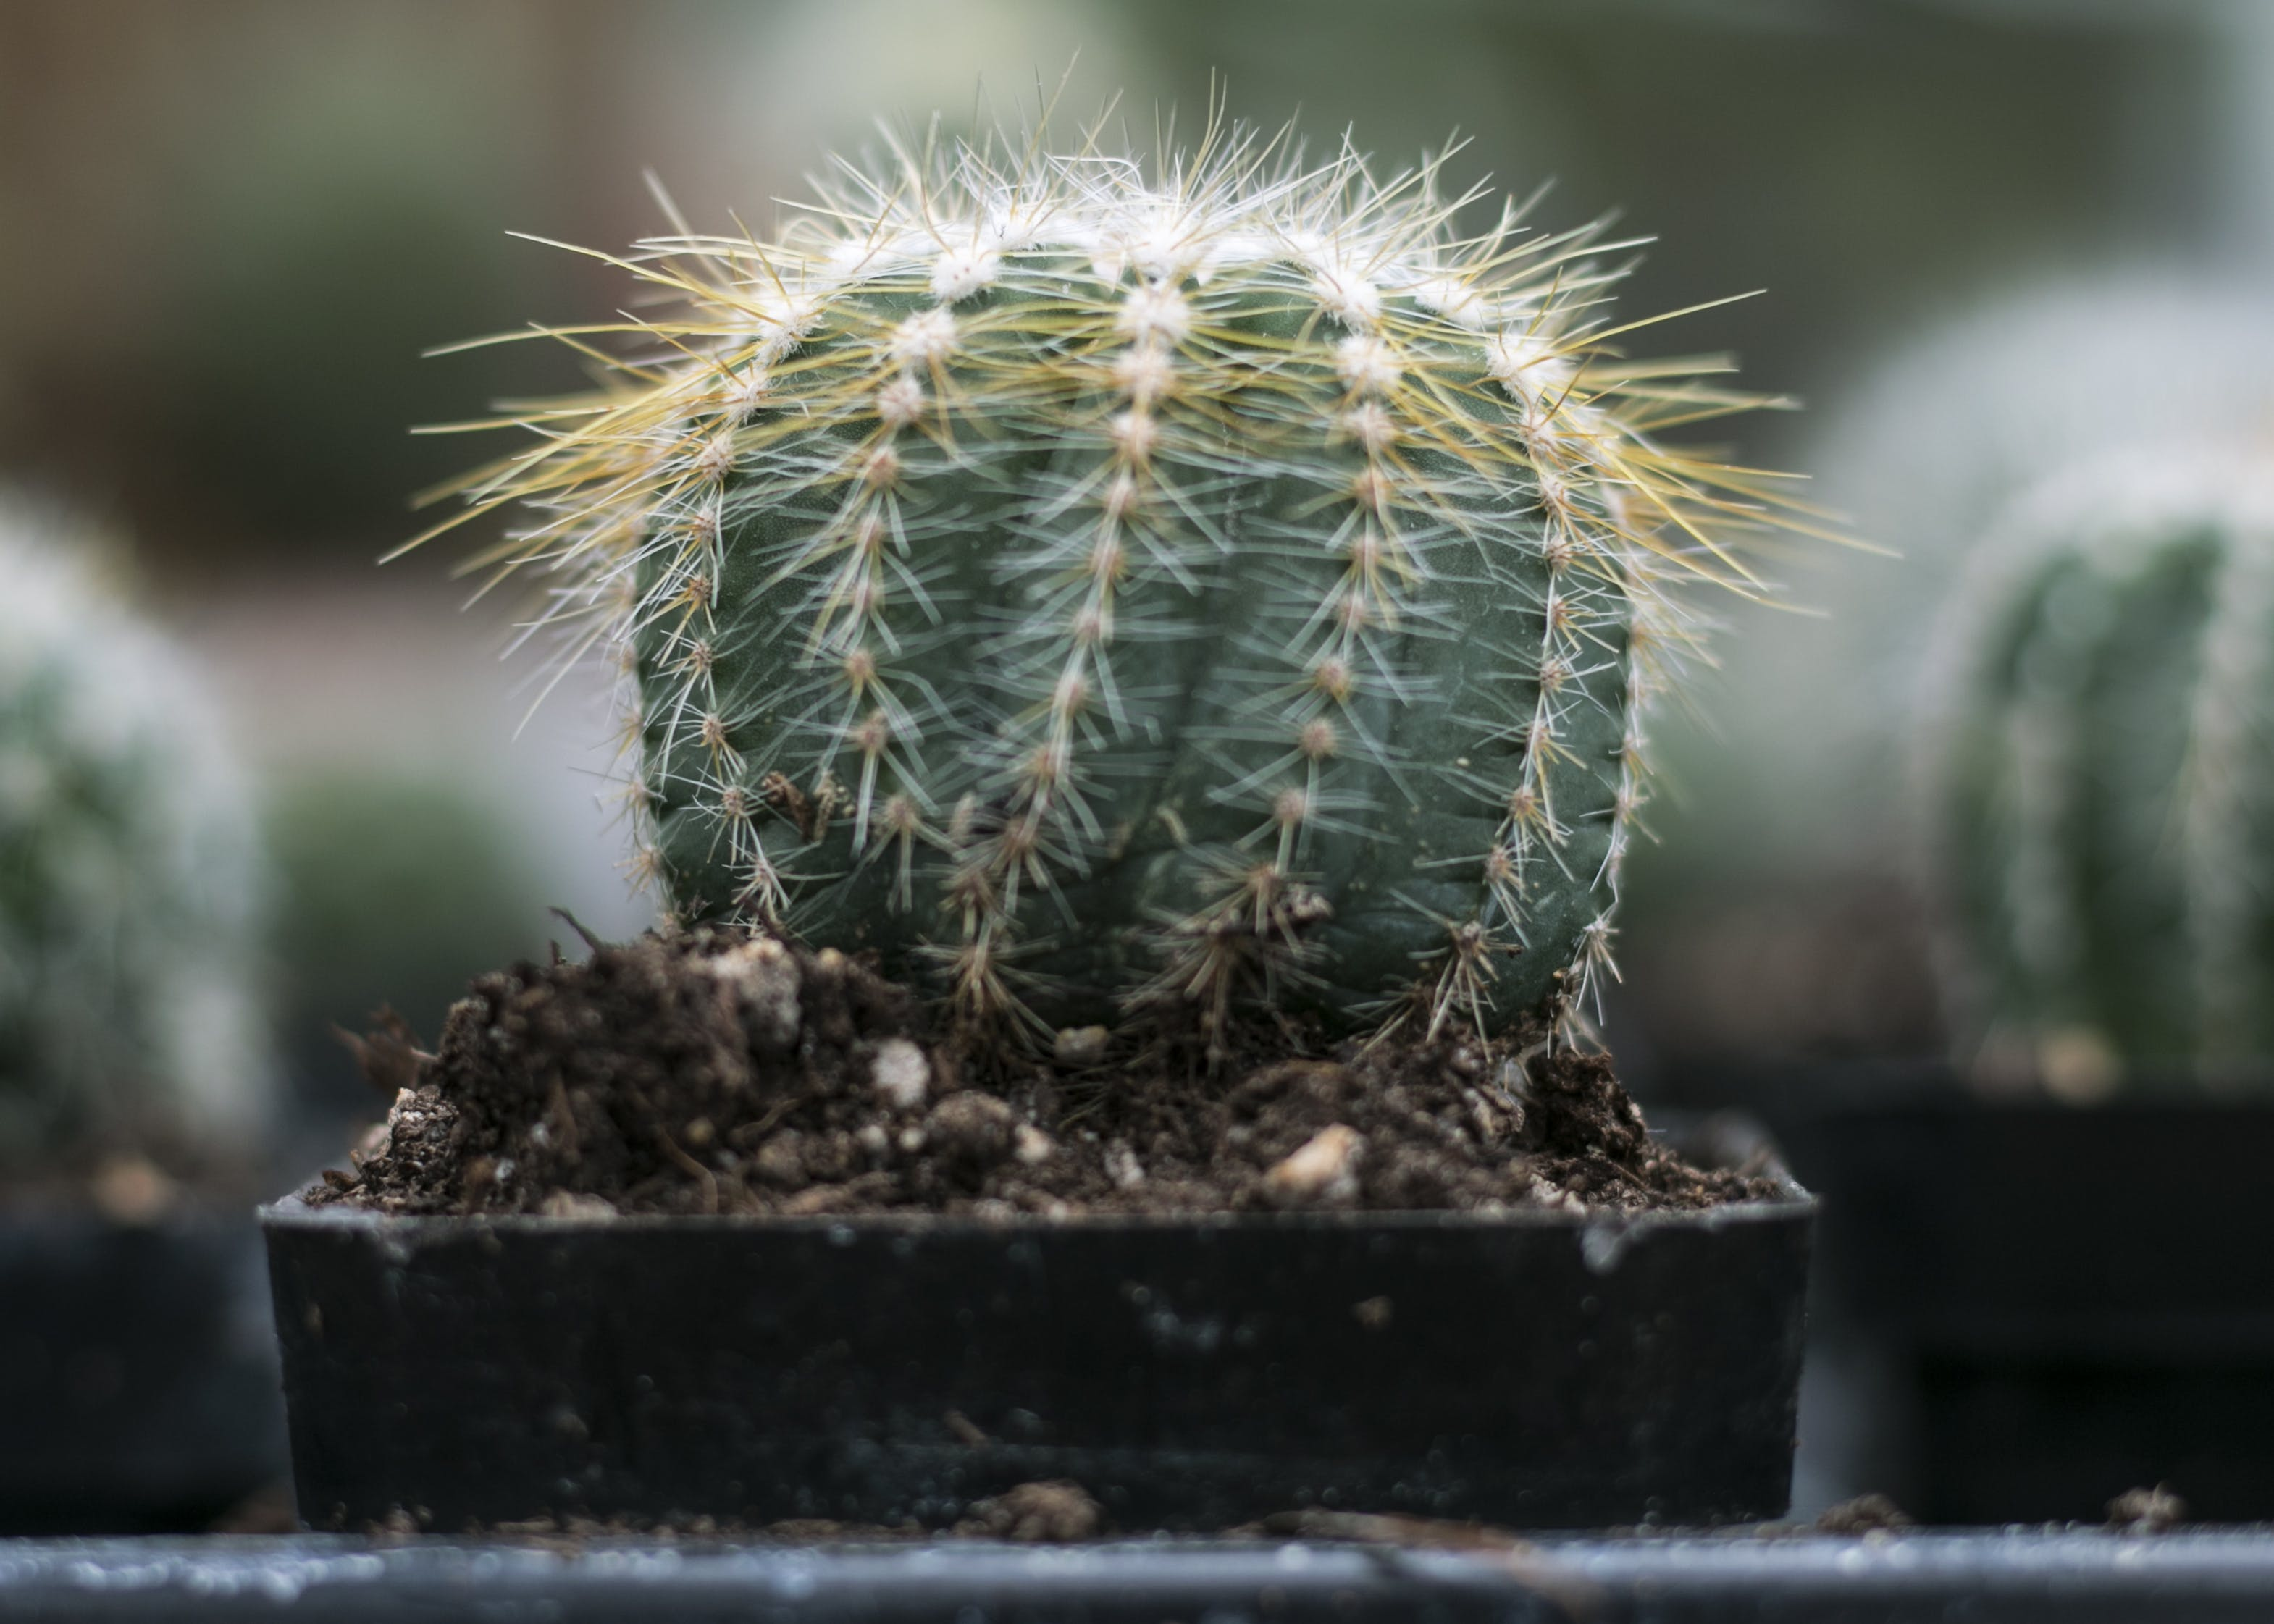 Close-Up Photography of Cactus